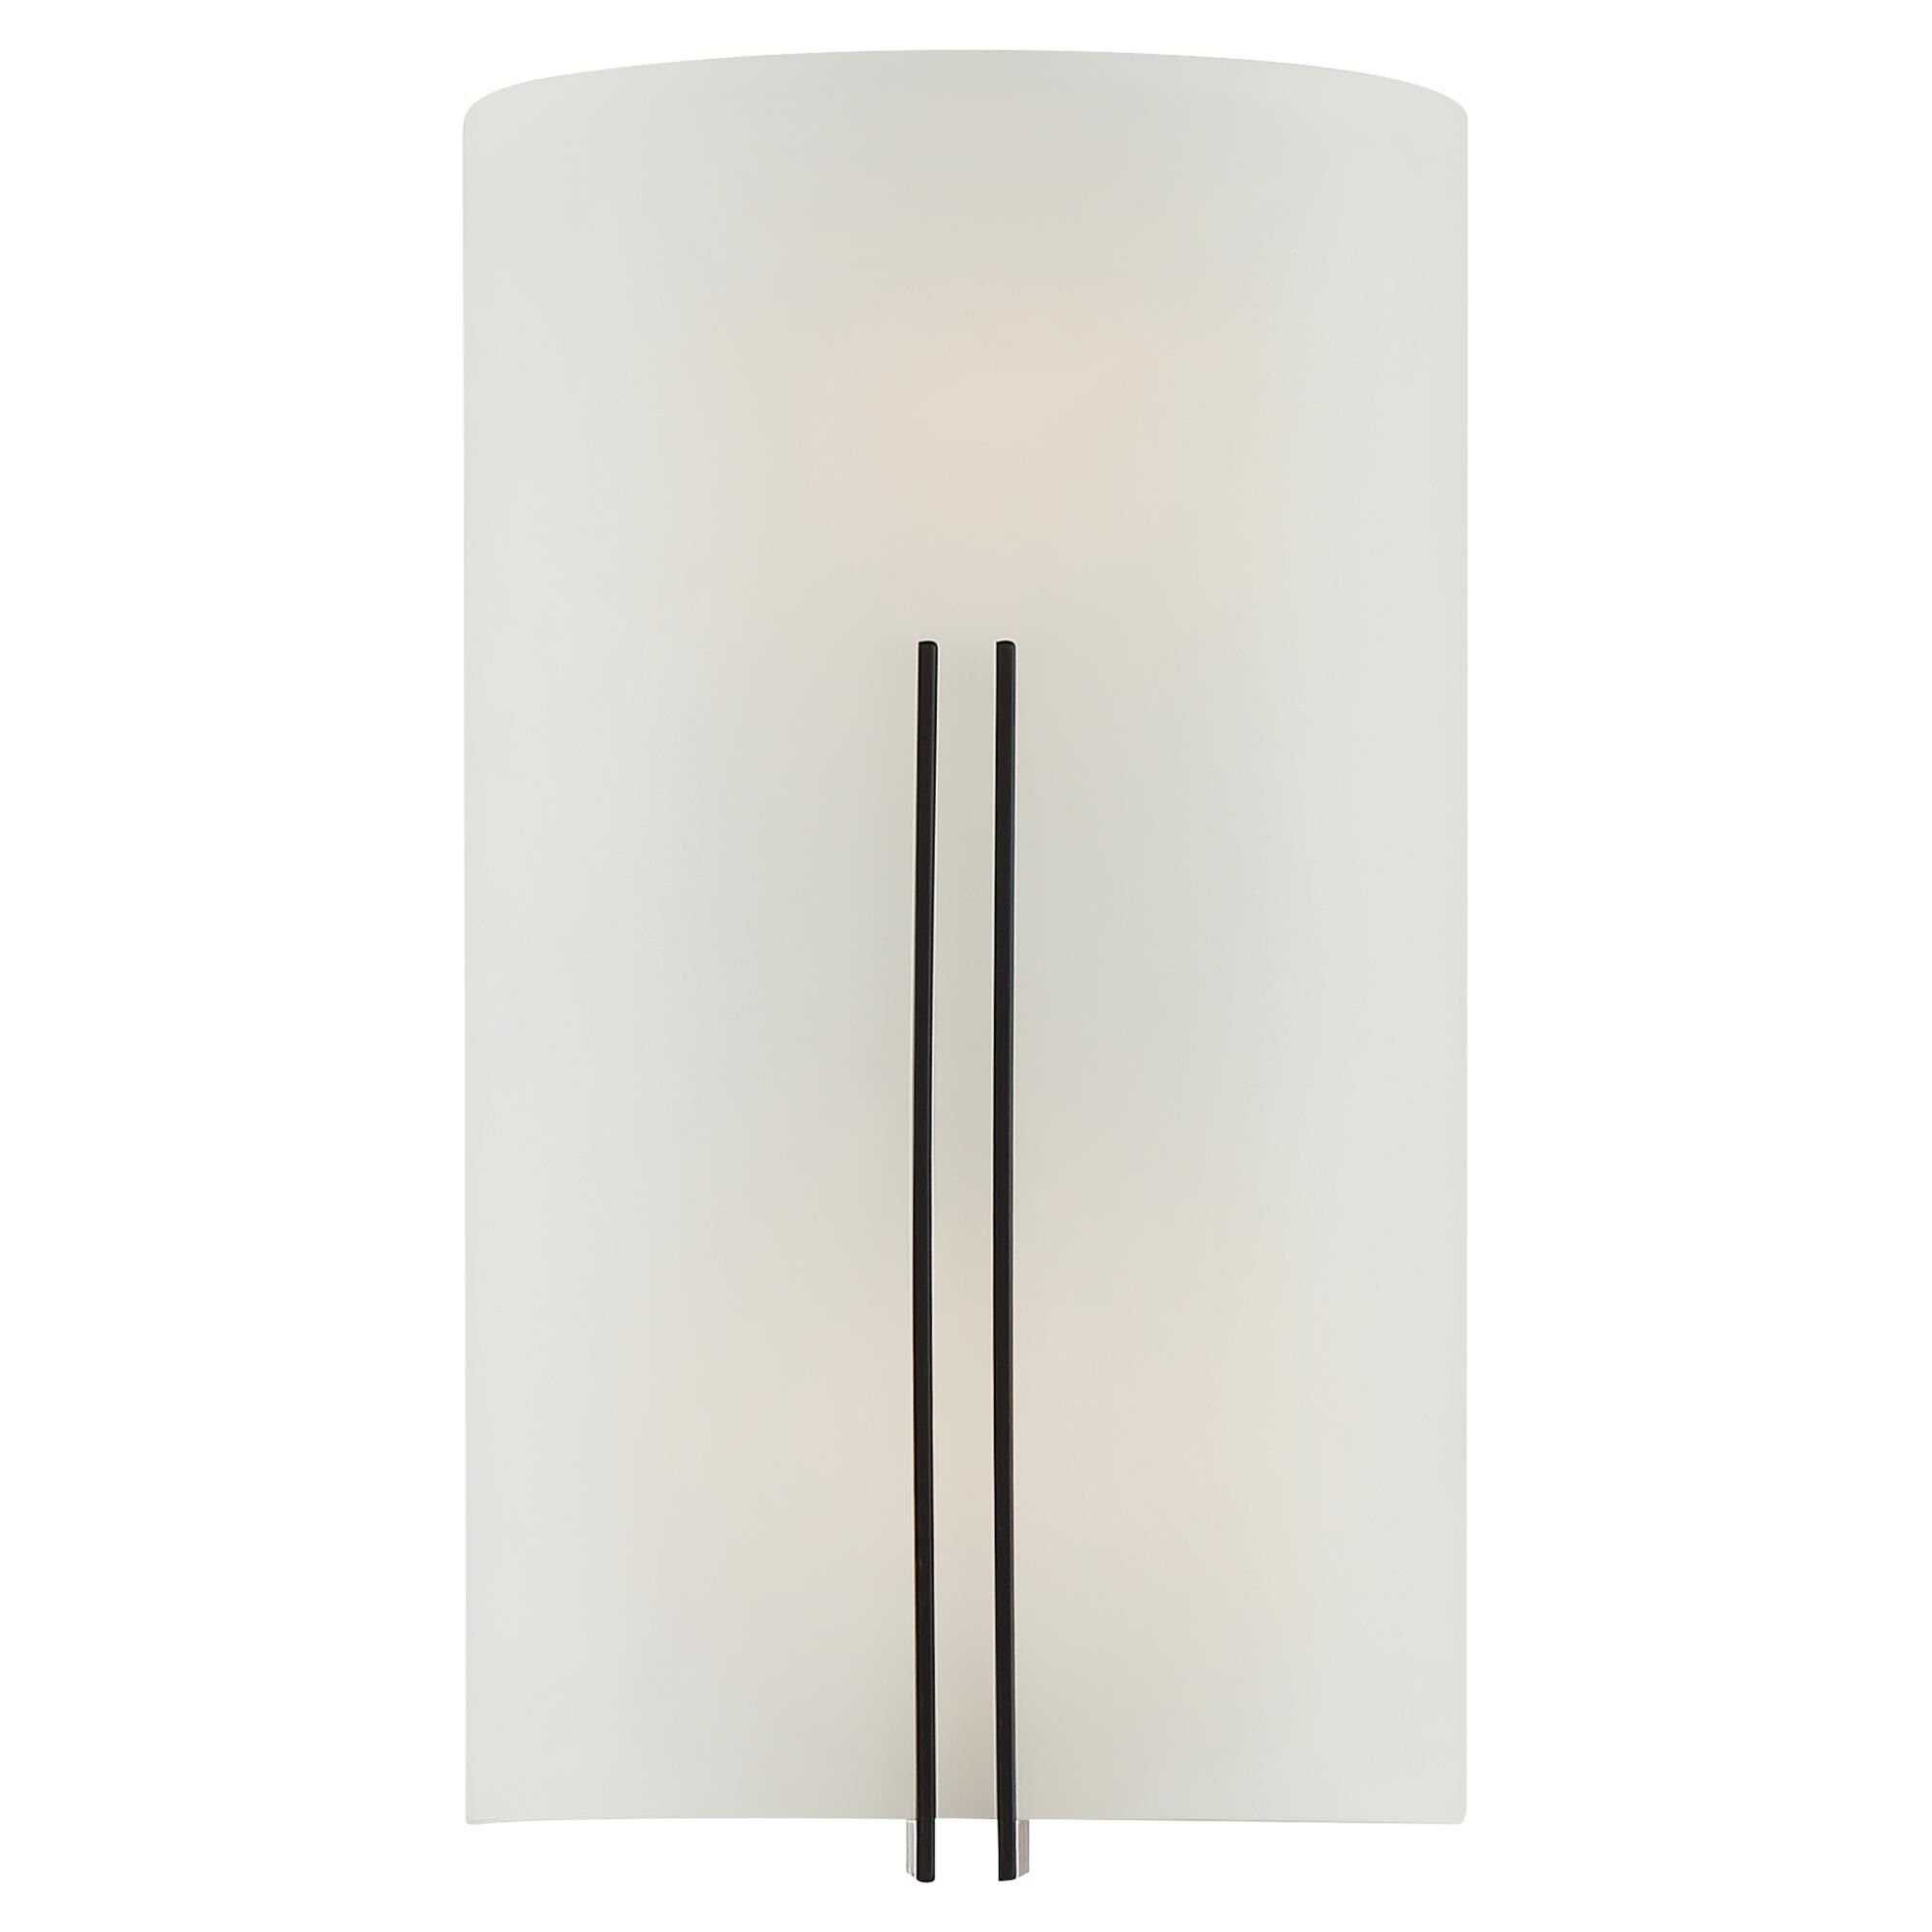 Access Lighting Prong 12 Inch LED Wall Sconce Prong 20446LEDDLP MBLWH Transitional